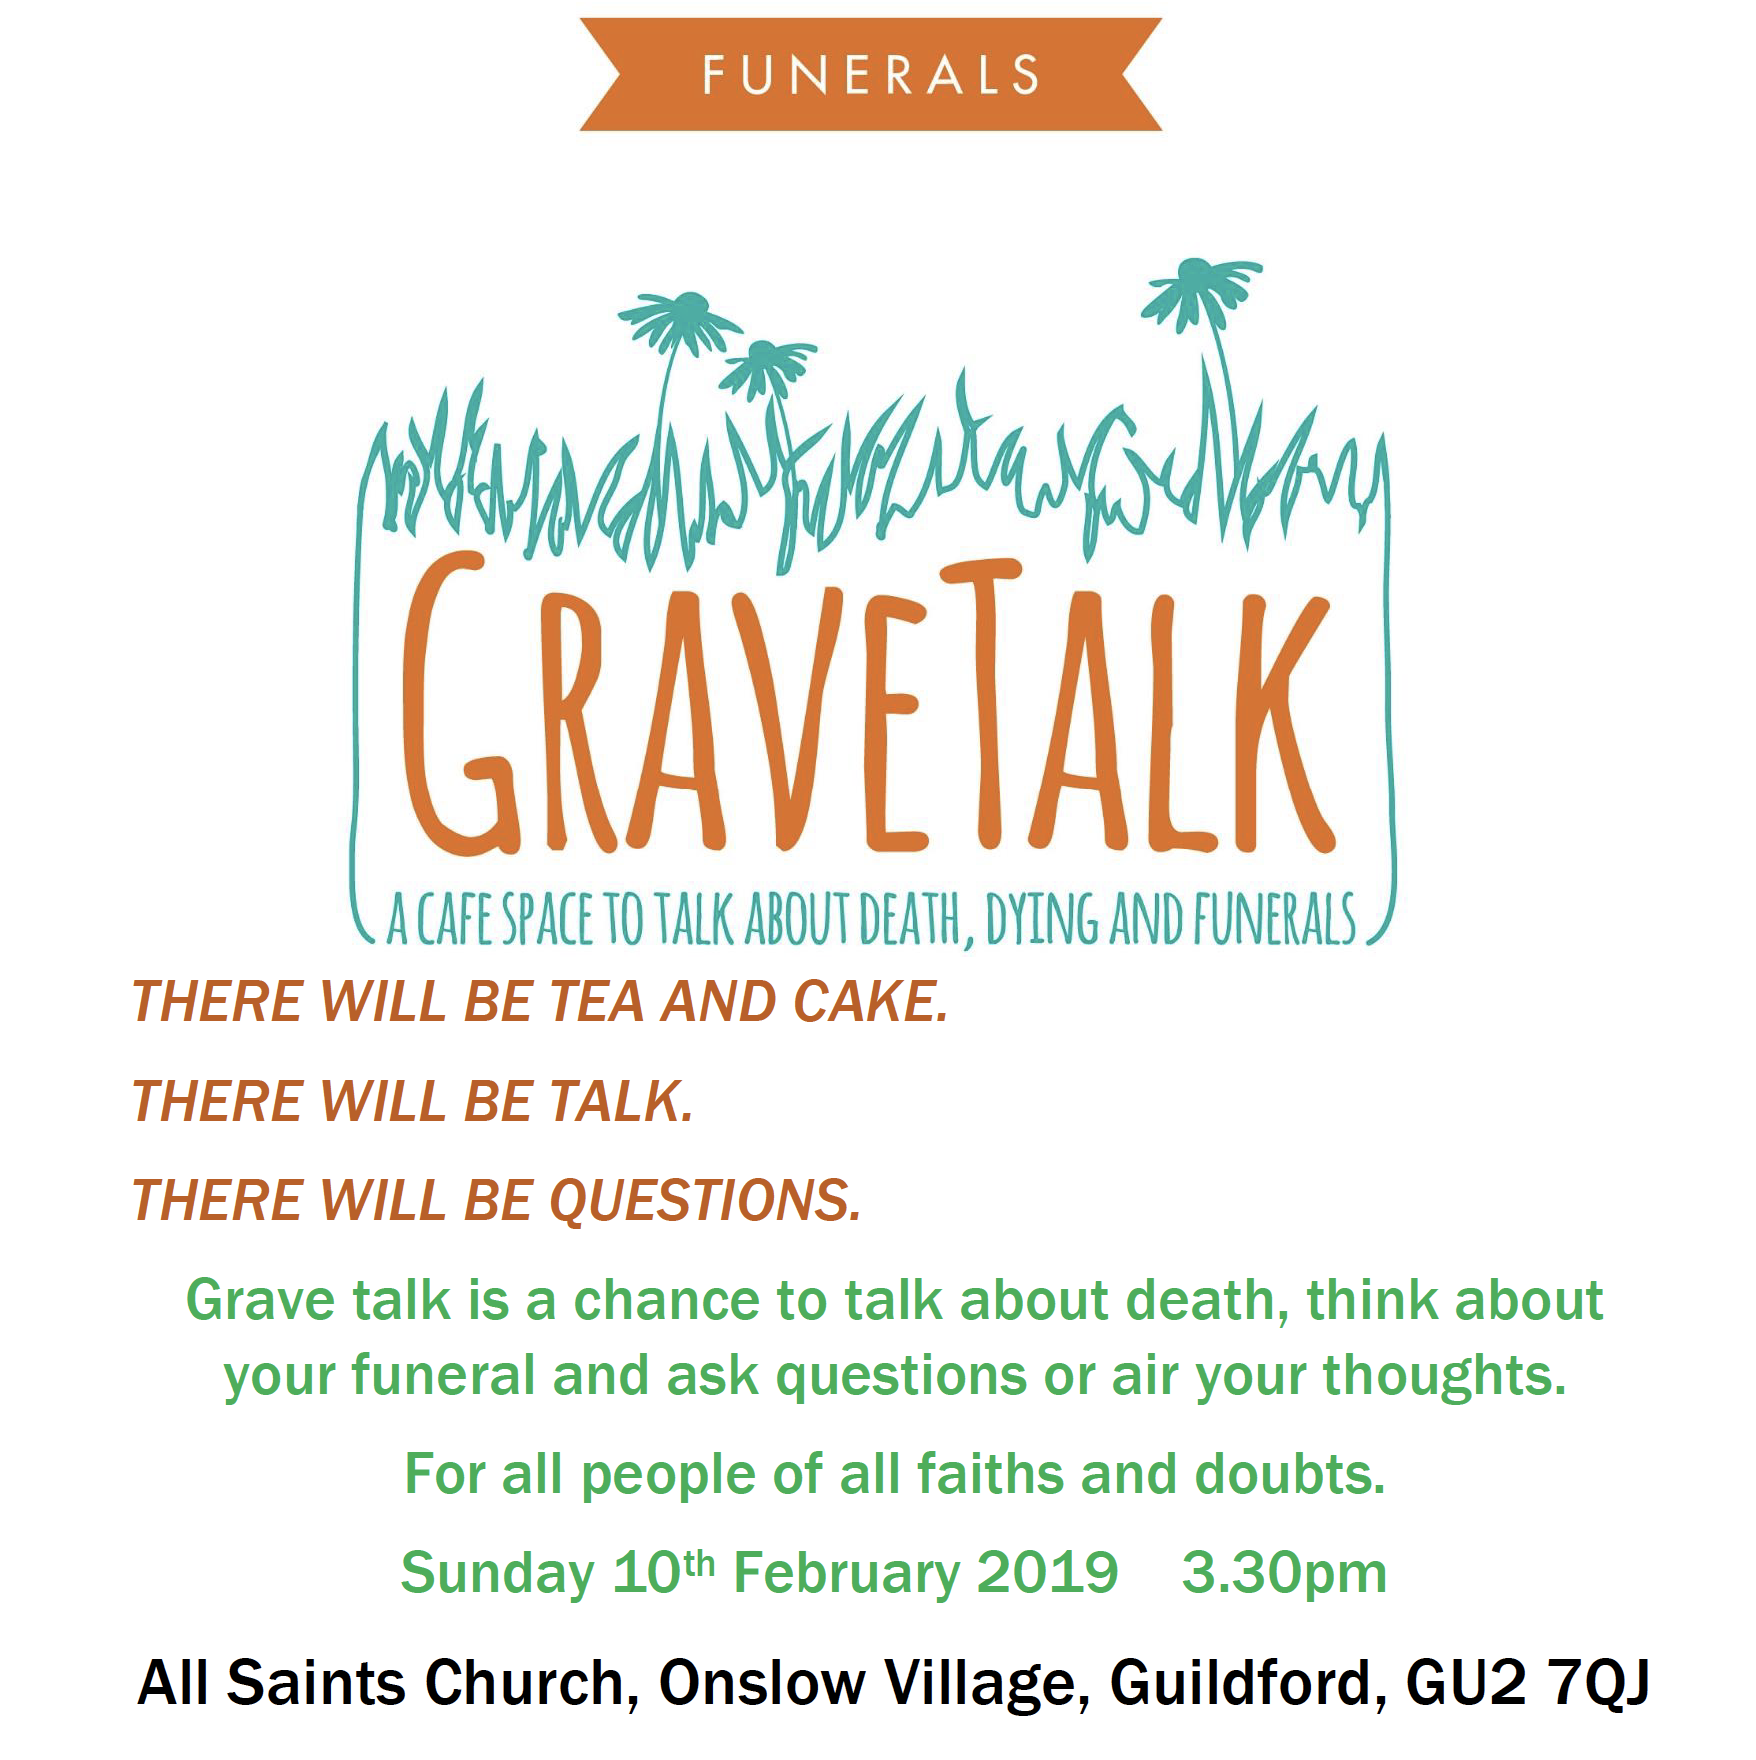 'Grave Talk' at All Saints Church, Onslow Village Sunday 10th Feb 3.30pm